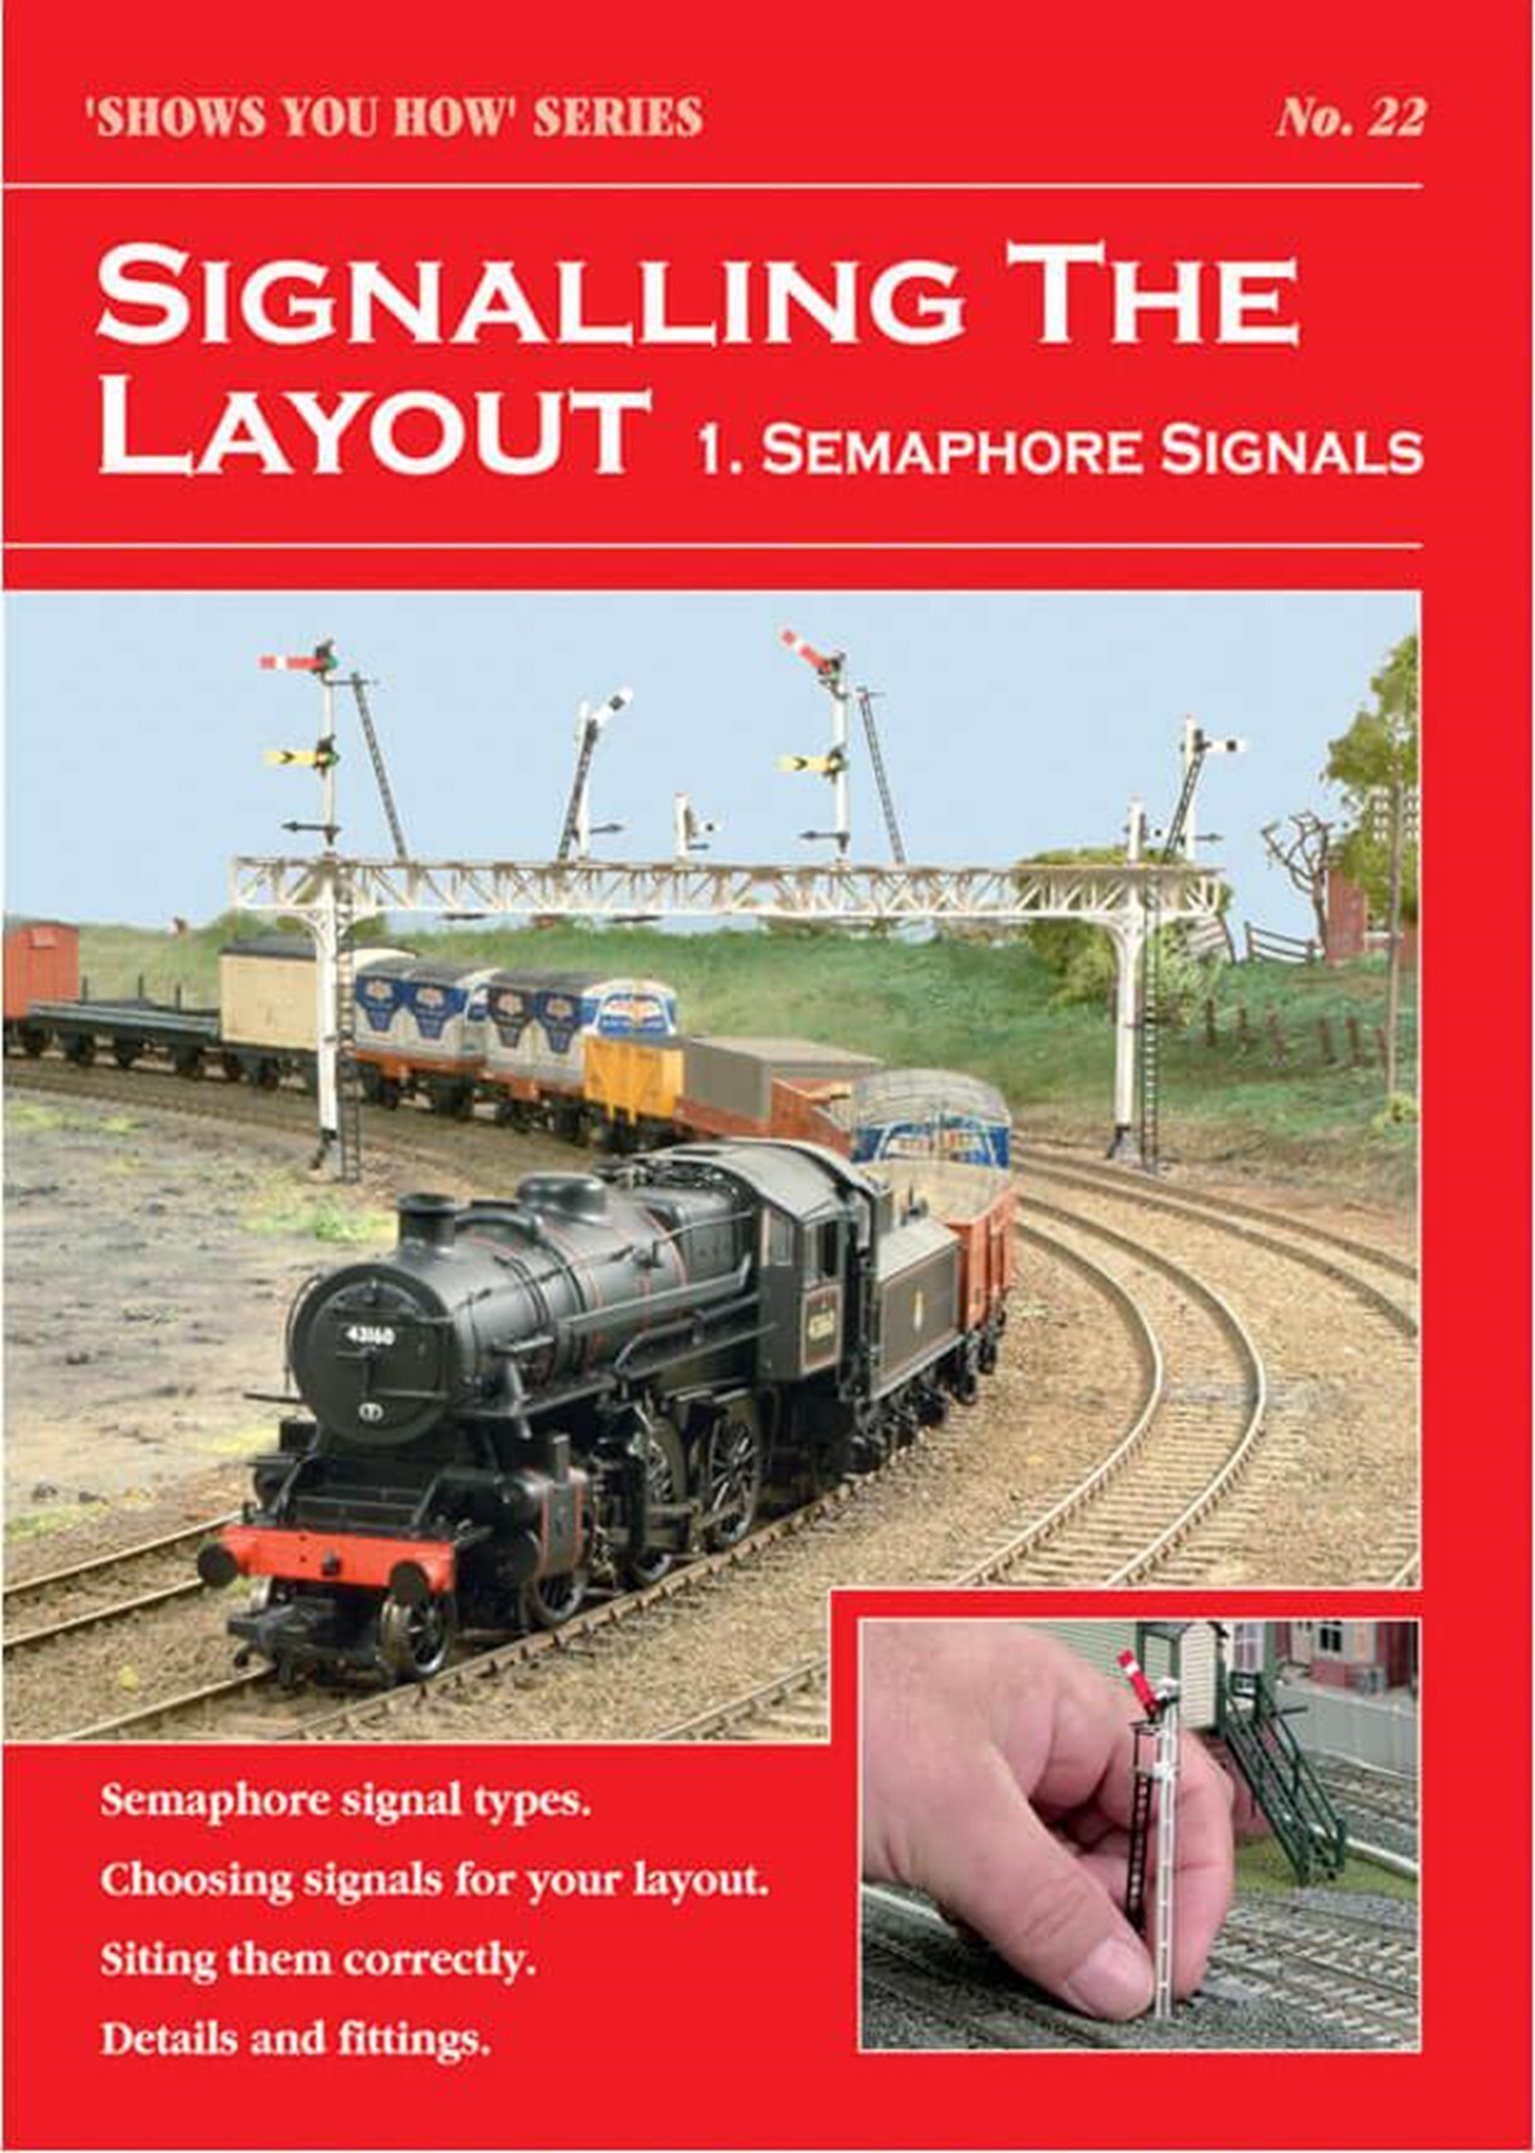 """Shows You How"" Series - Signalling the Layout - Part 1: Semaphore Signals"